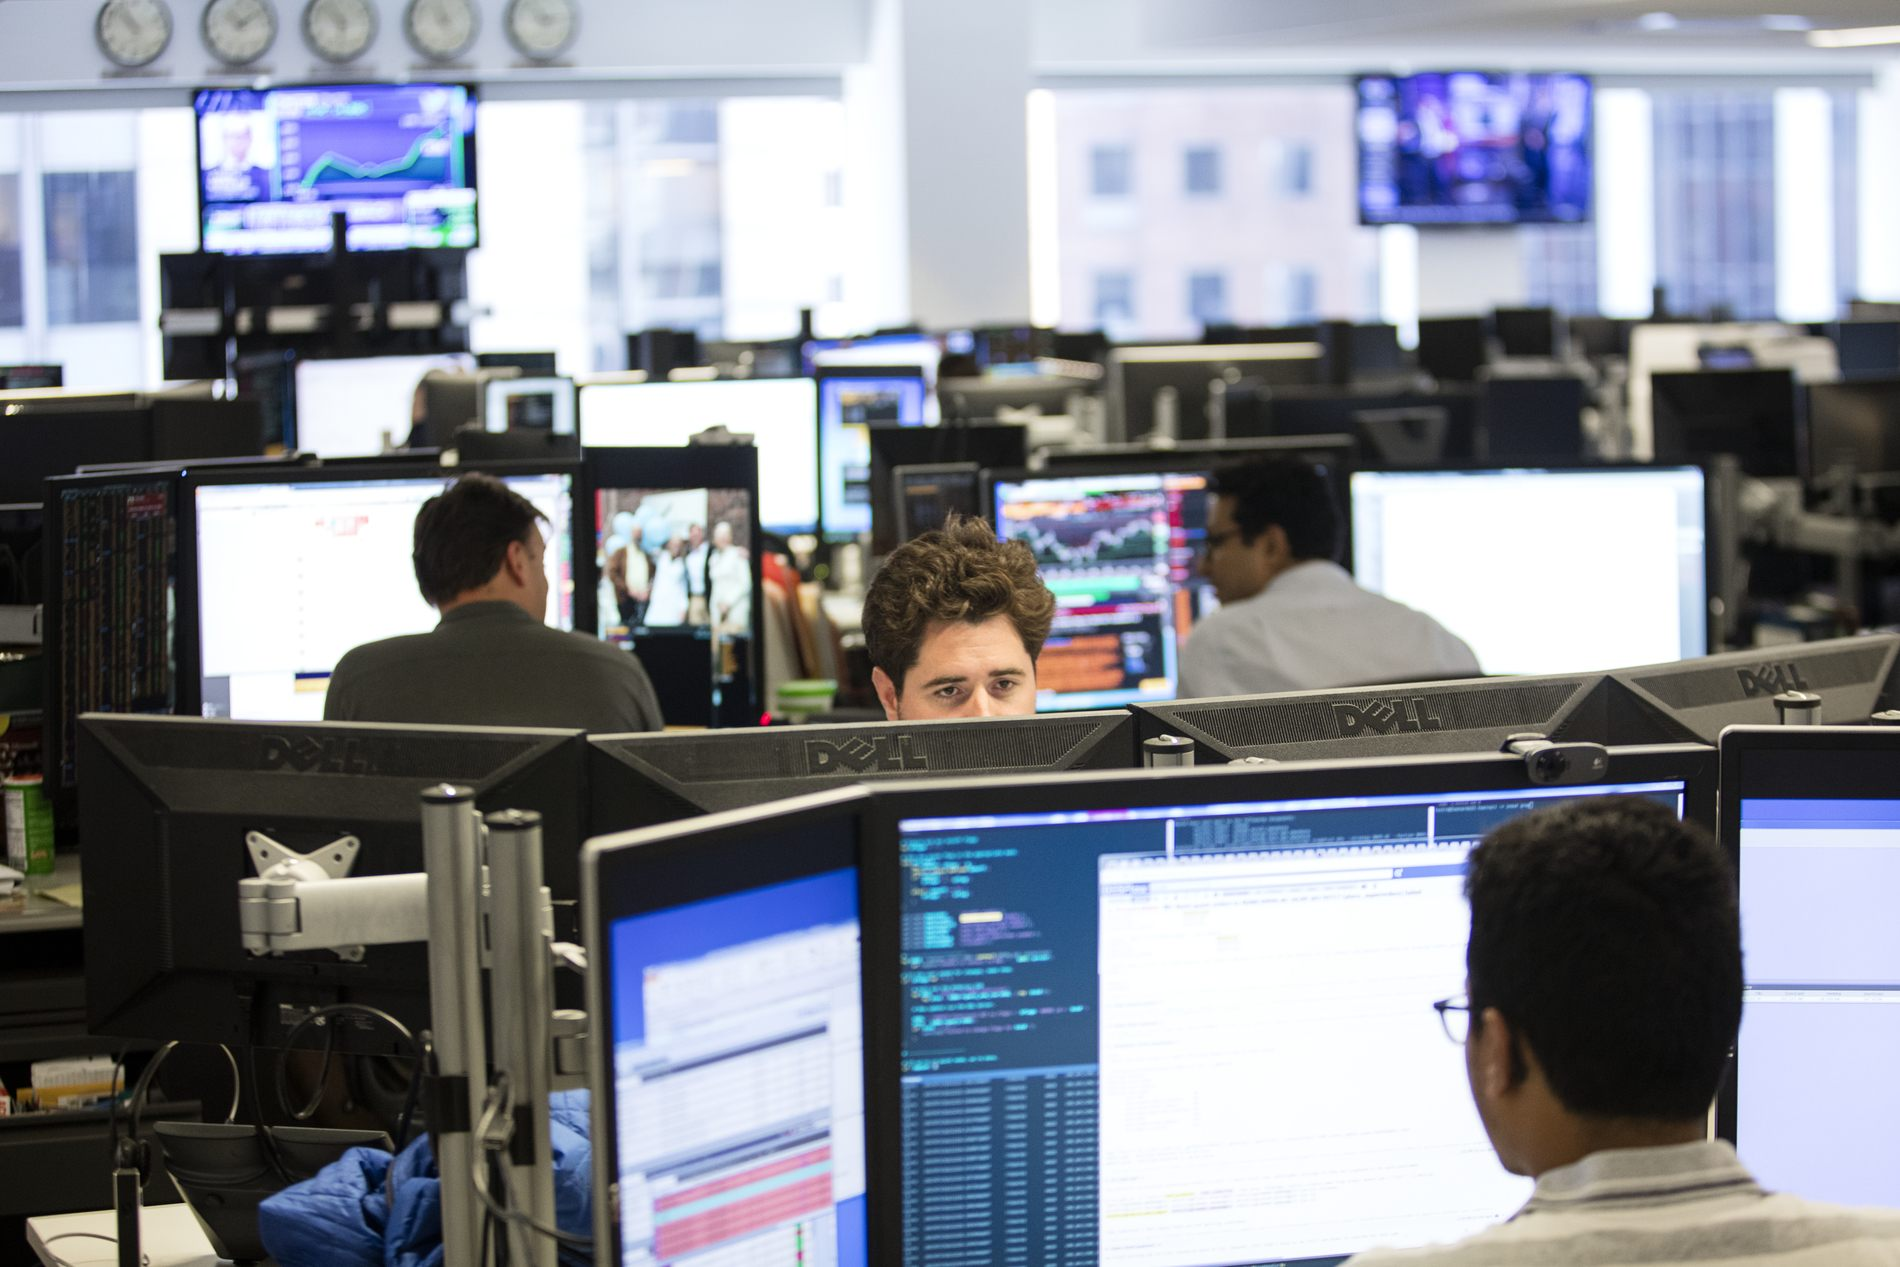 View of trading floor with several rows of workstations.